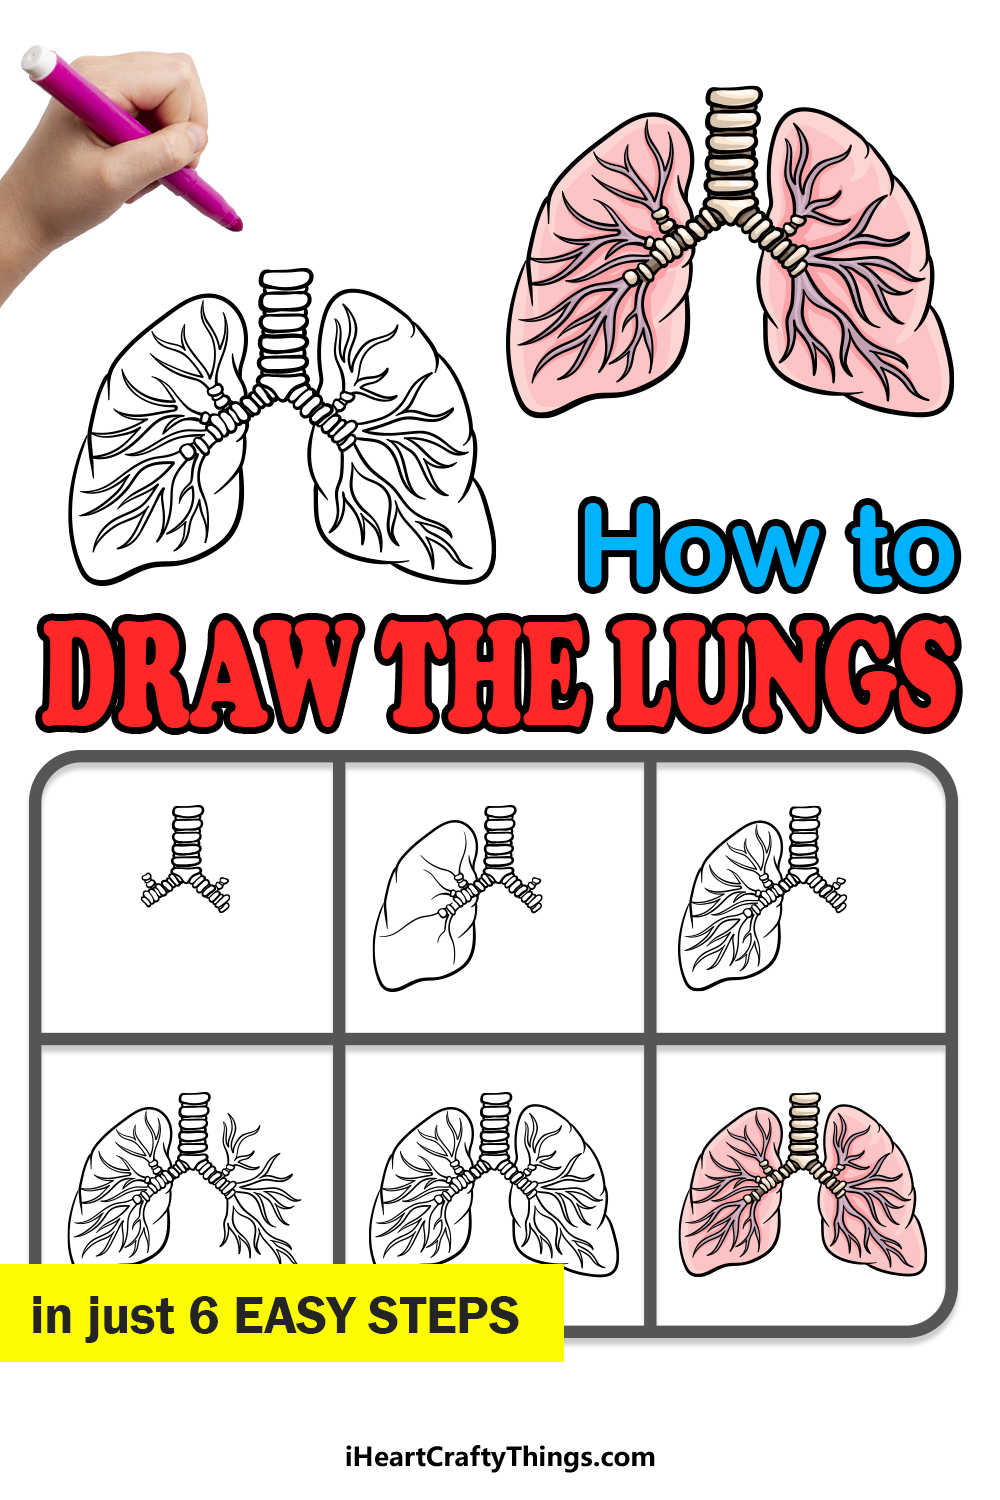 how to draw the lungs in 6 easy steps